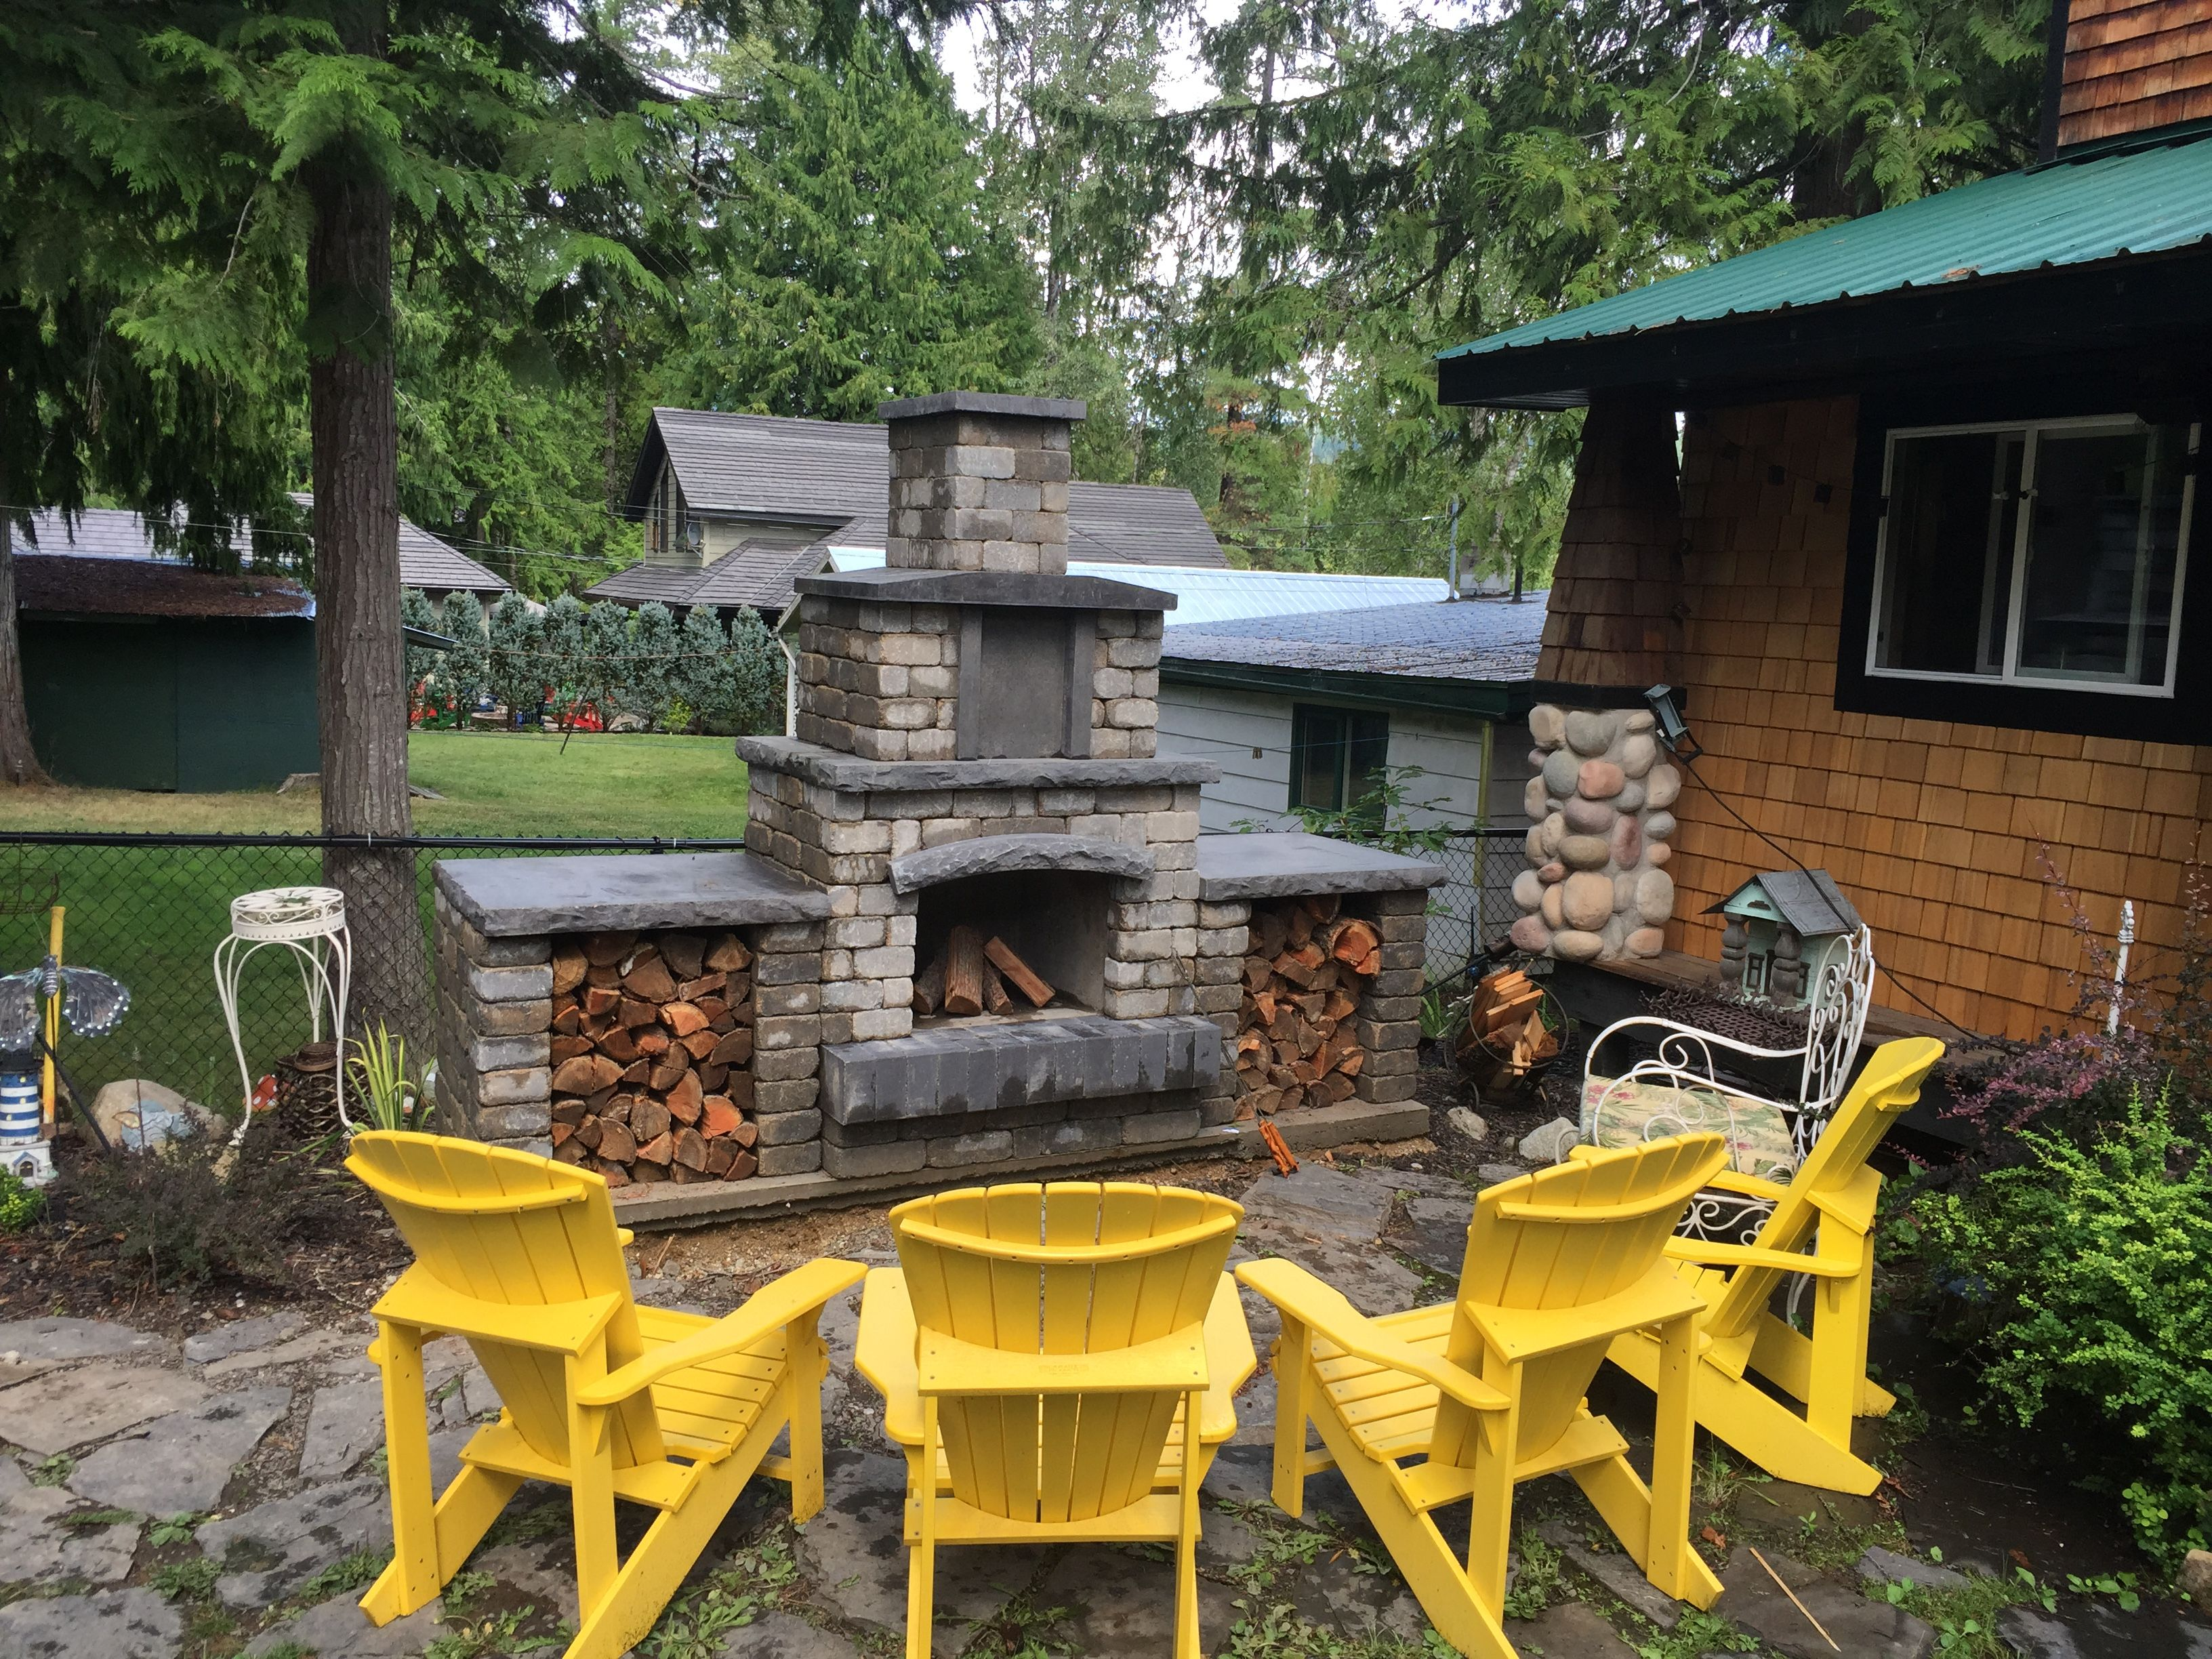 barkman oasis fireplace installed at the cabin this is a diy kit